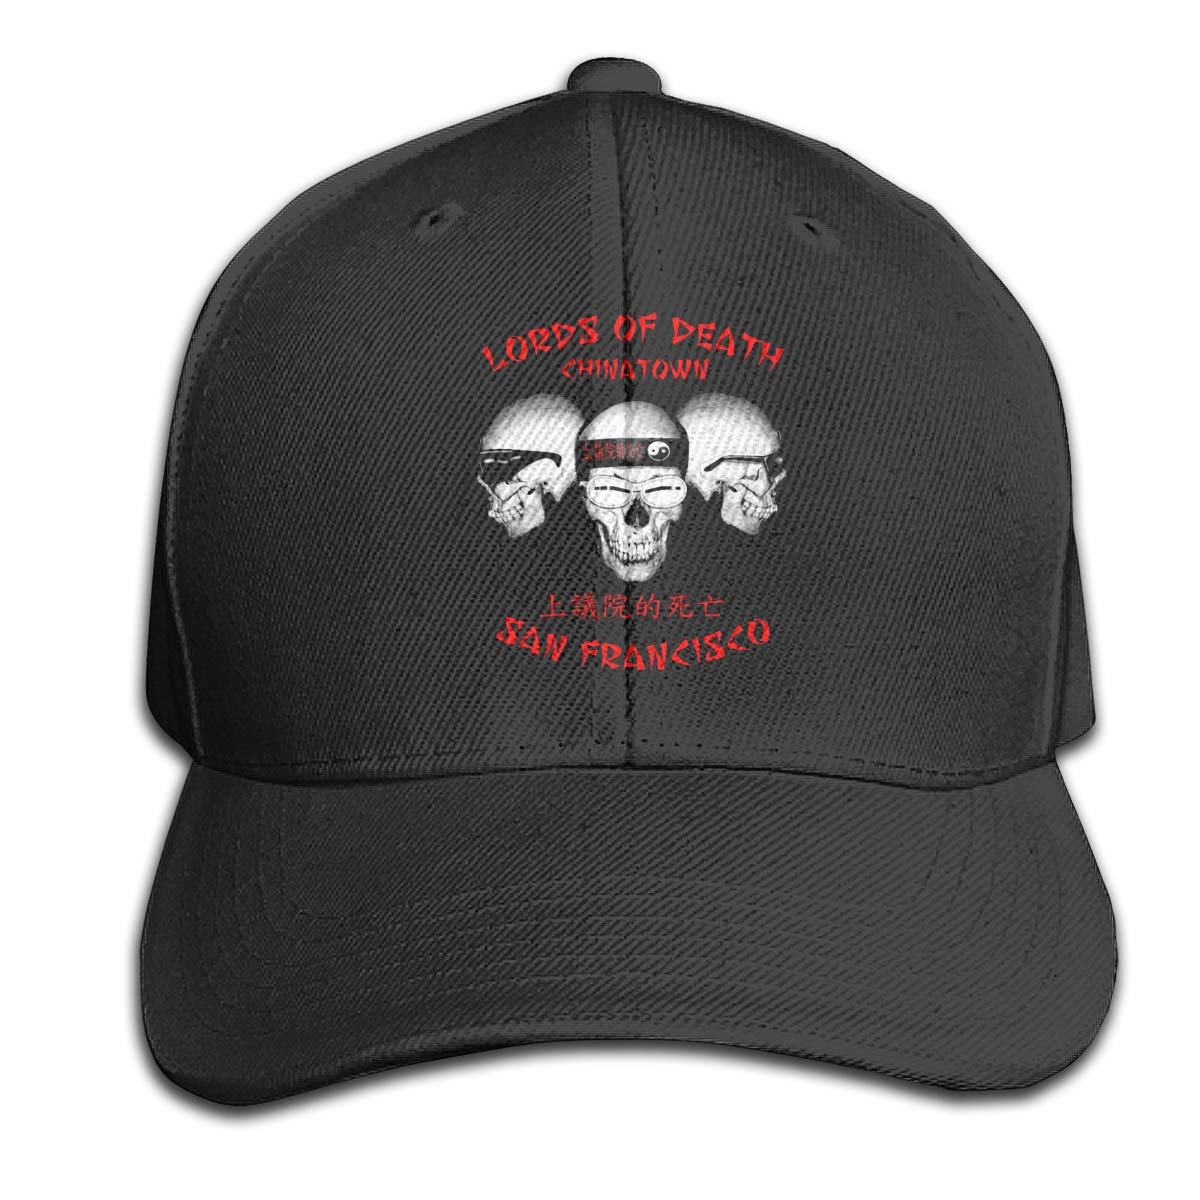 a2e2e500f96736 Lords of Death_ Big Trouble in Little China Hat Men's Vintage Washed Personalized  Hats Black: Amazon.ca: Clothing & Accessories